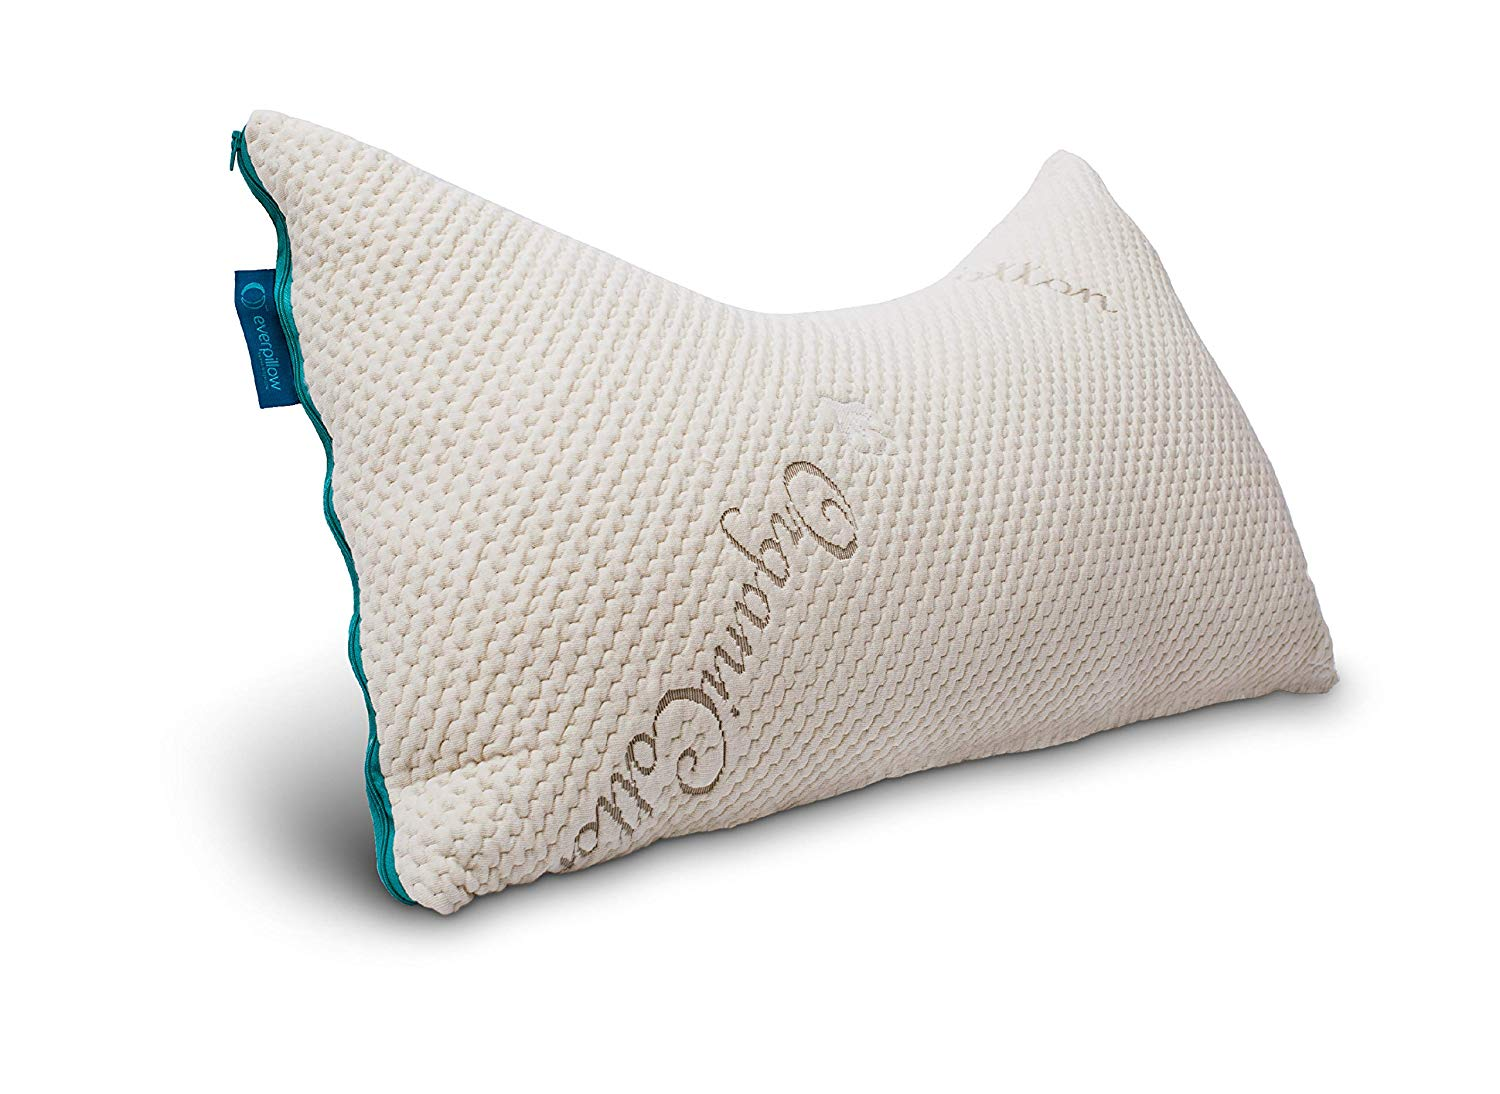 Everpillow by Infinitemoon best latex pillow review by www.dailysleep.org